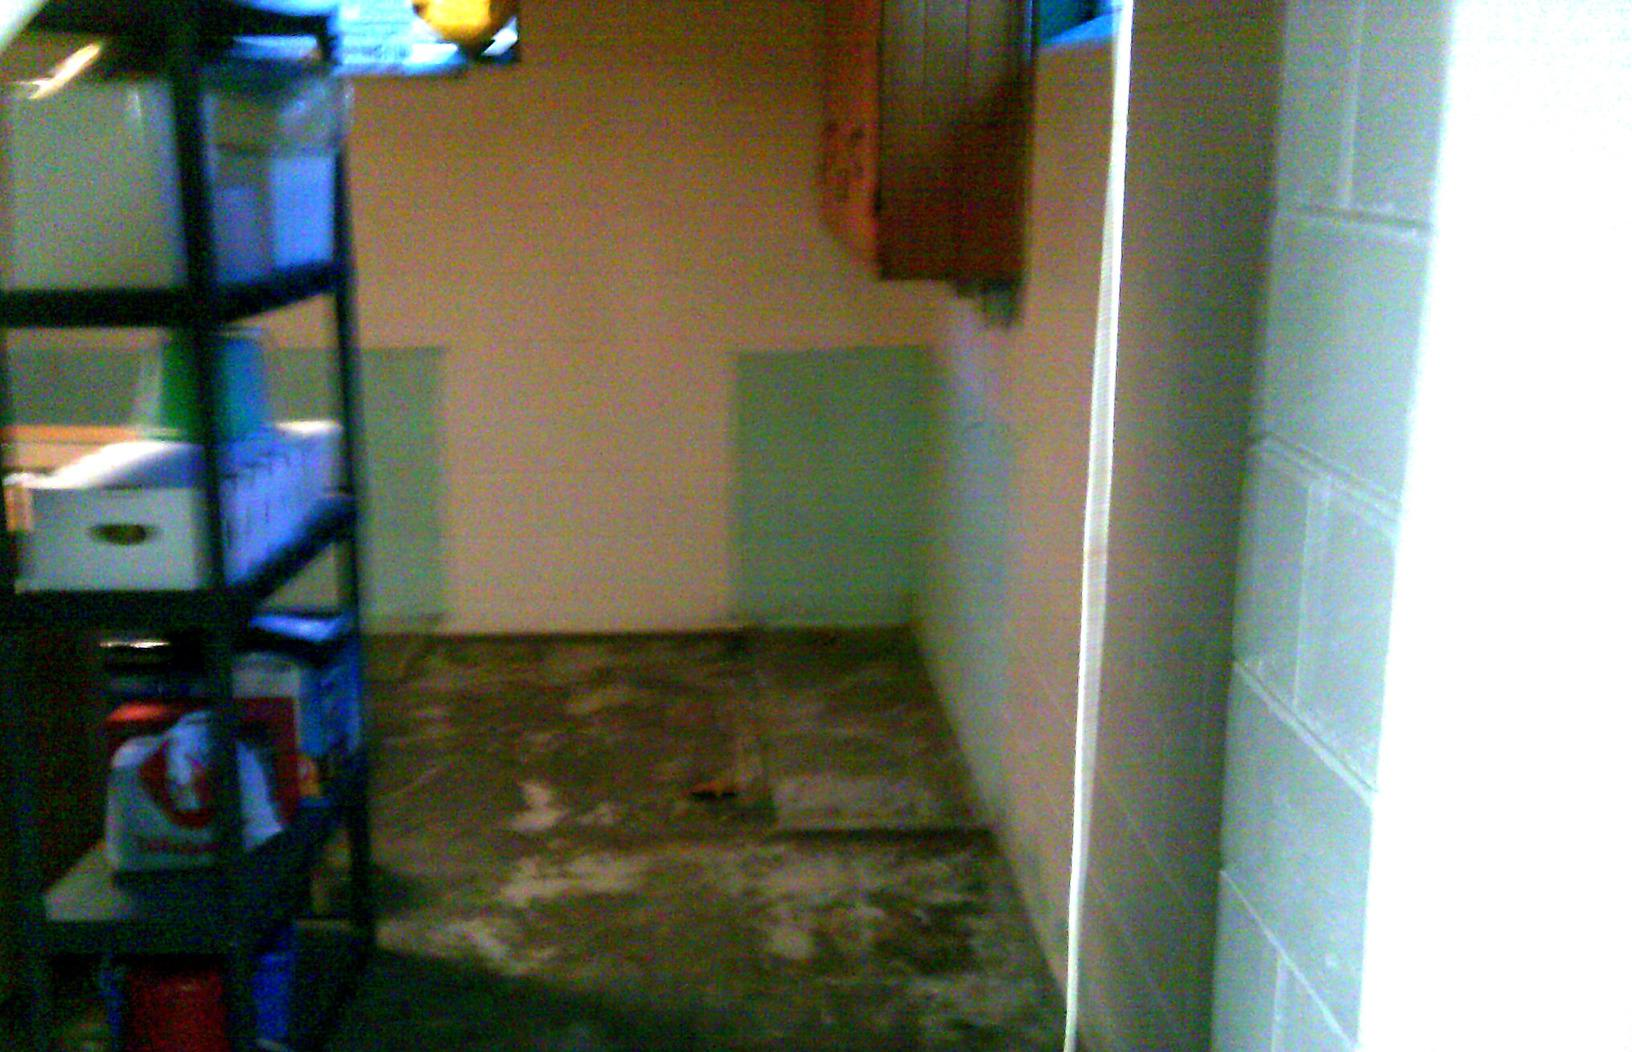 The basement before waterproofing was damp and prone to leaks.